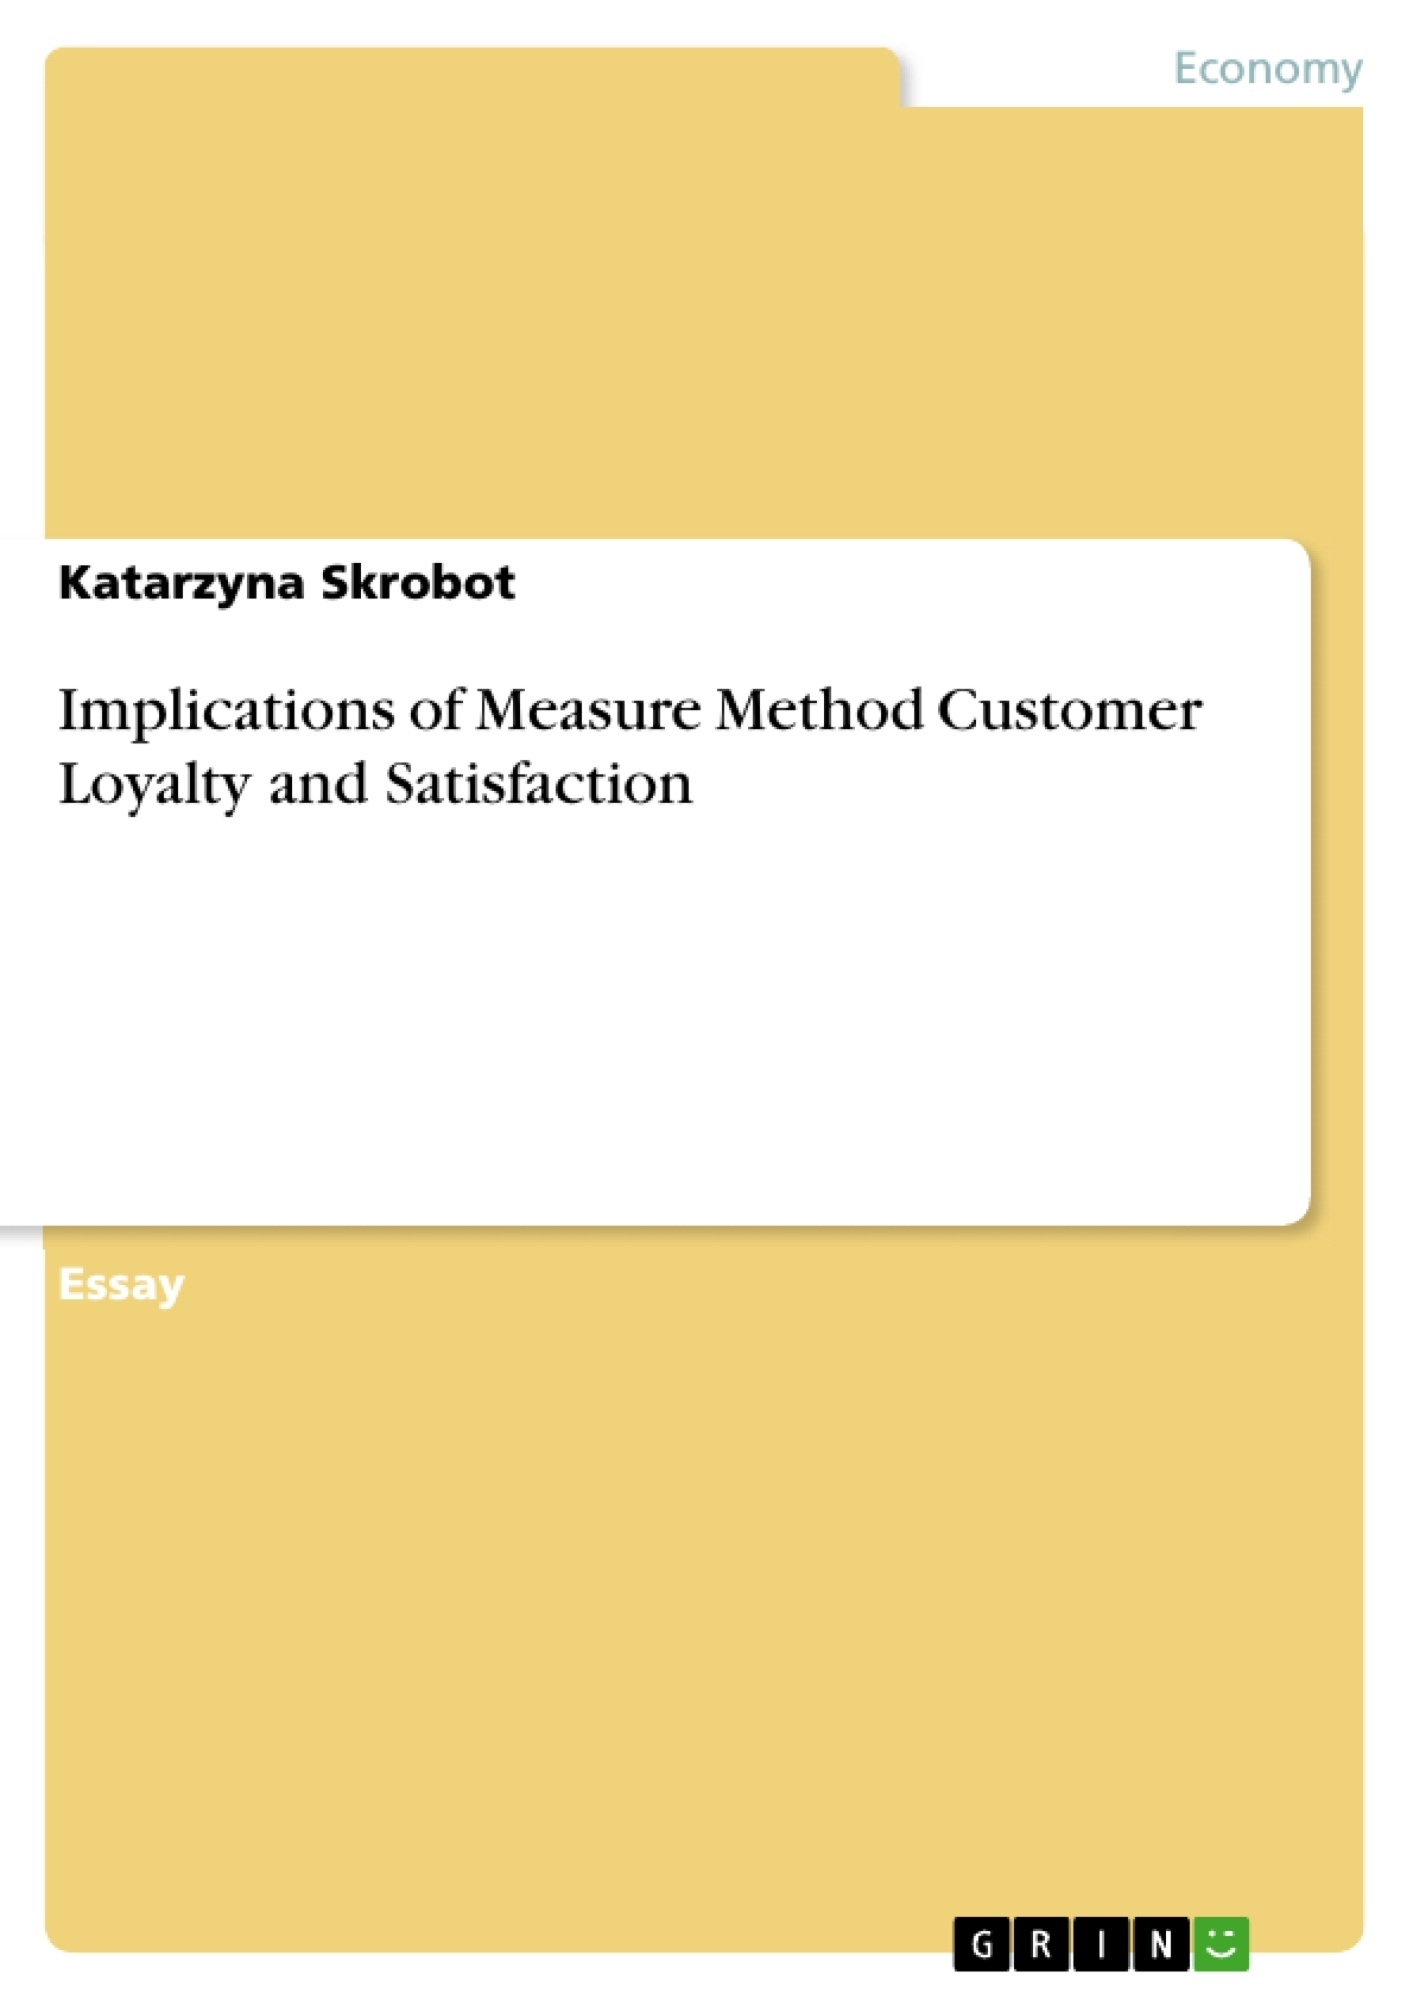 Title: Implications of Measure Method Customer Loyalty and Satisfaction